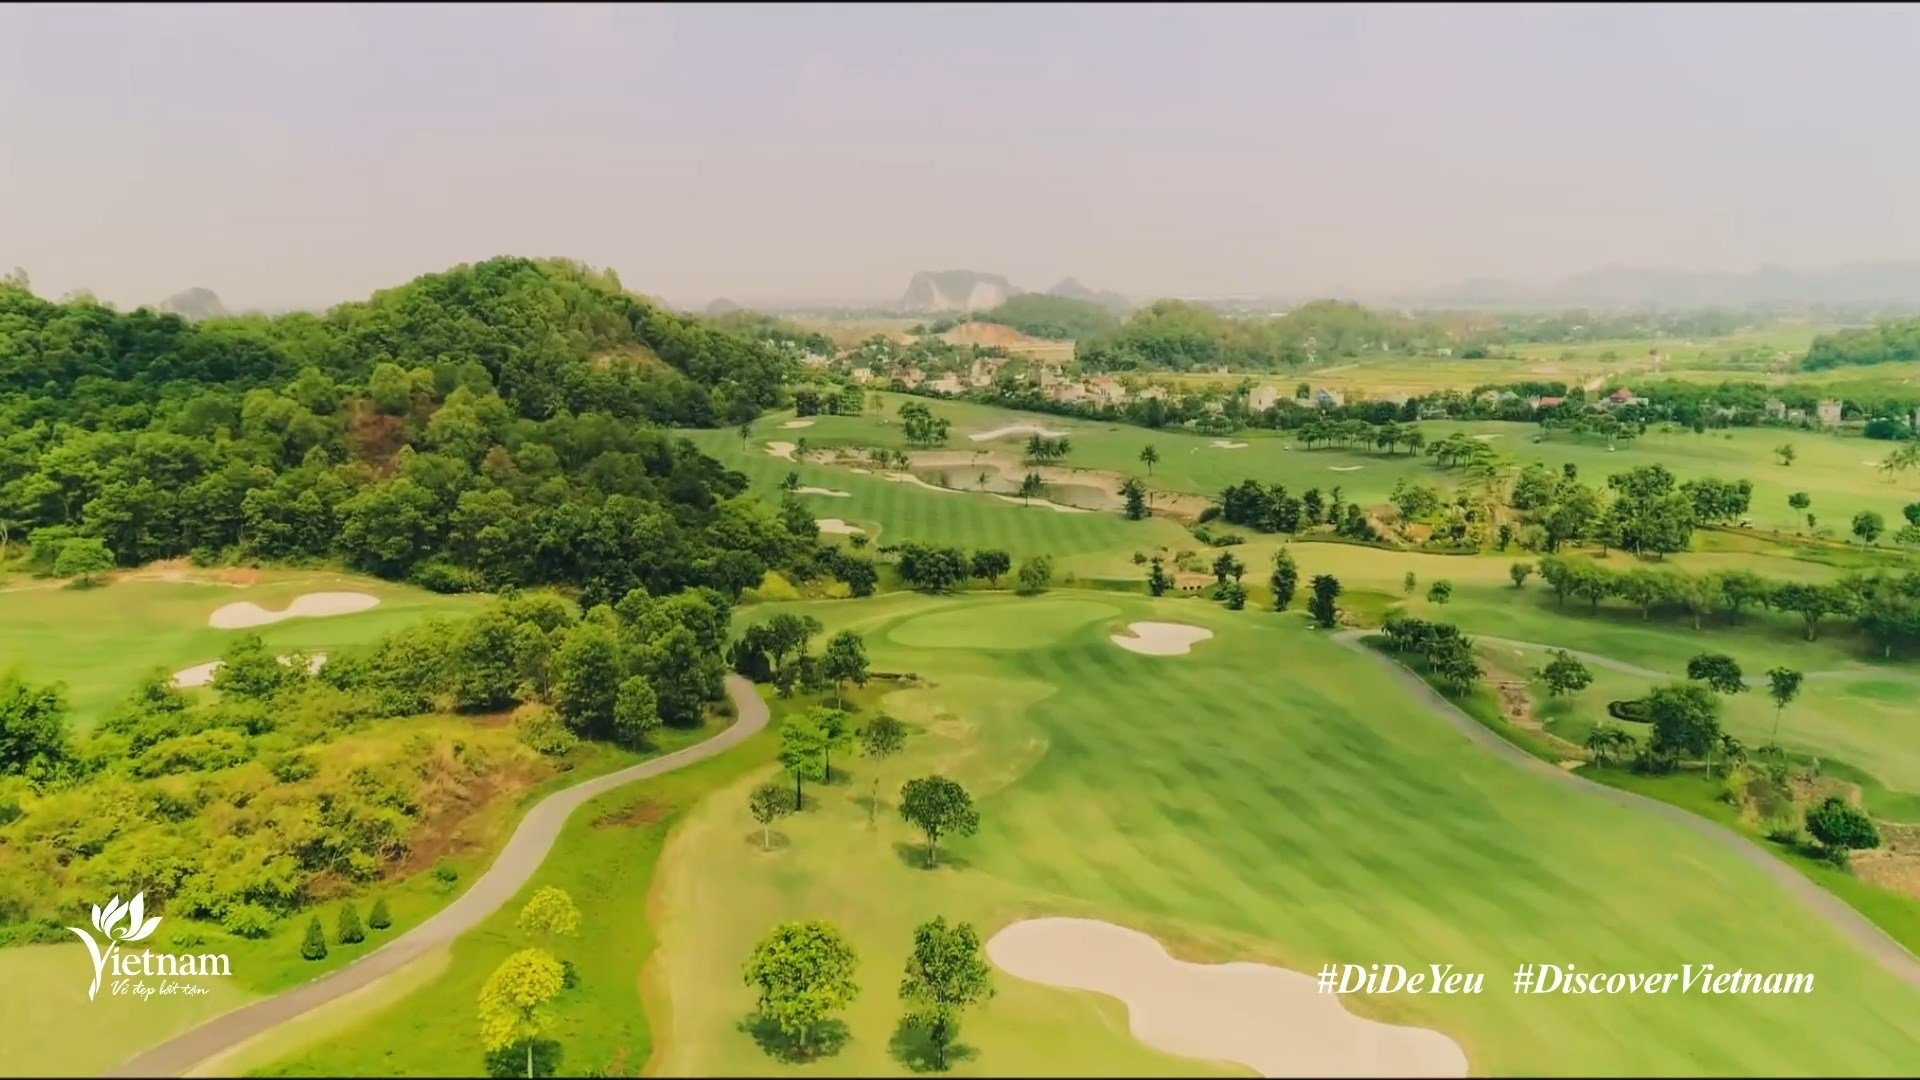 60-second video released featuring Ninh Binh's natural beauty